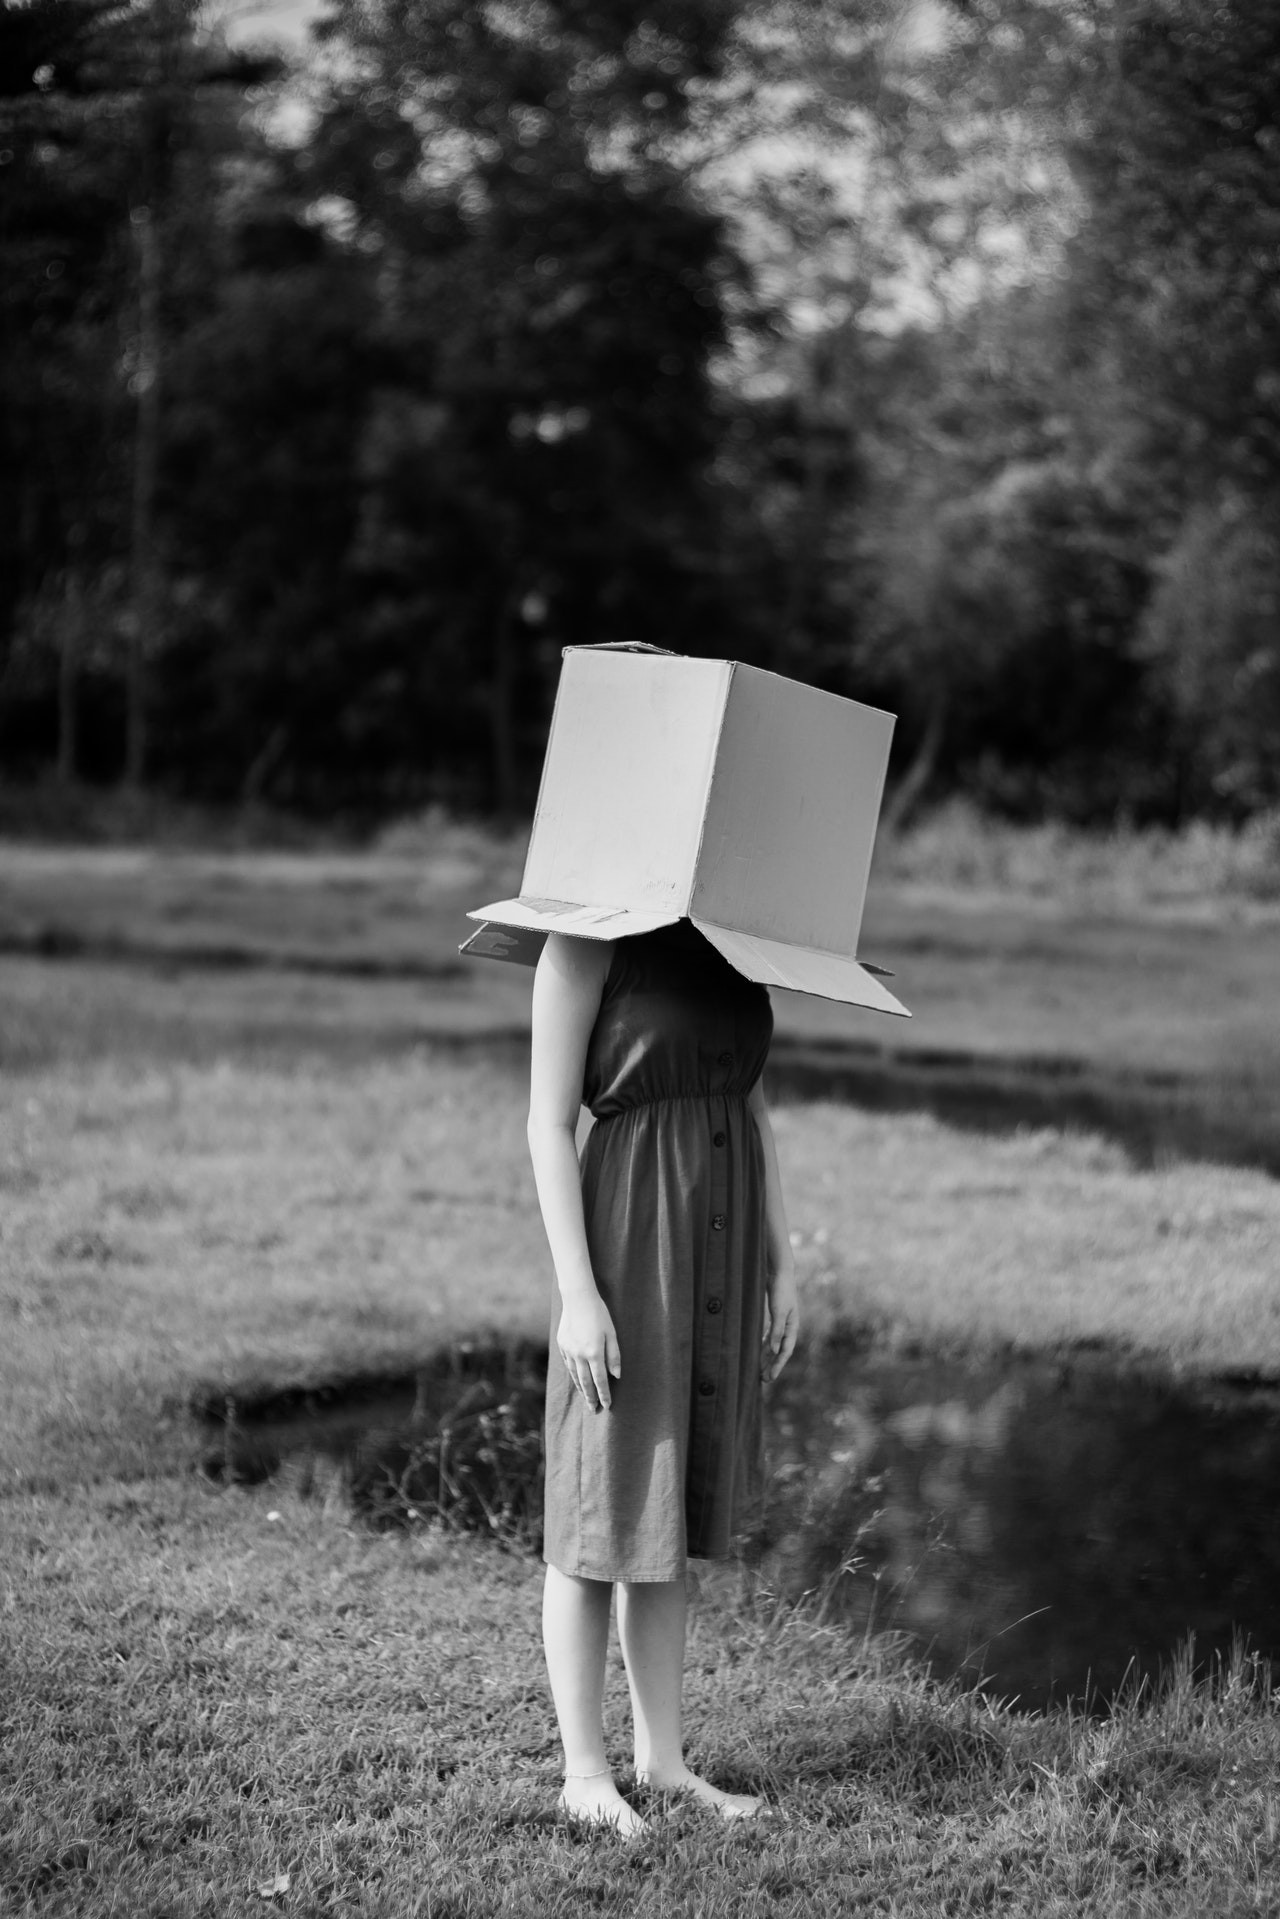 A young, barefoot woman stands alone in a grassy field with a cardboard box over her head.